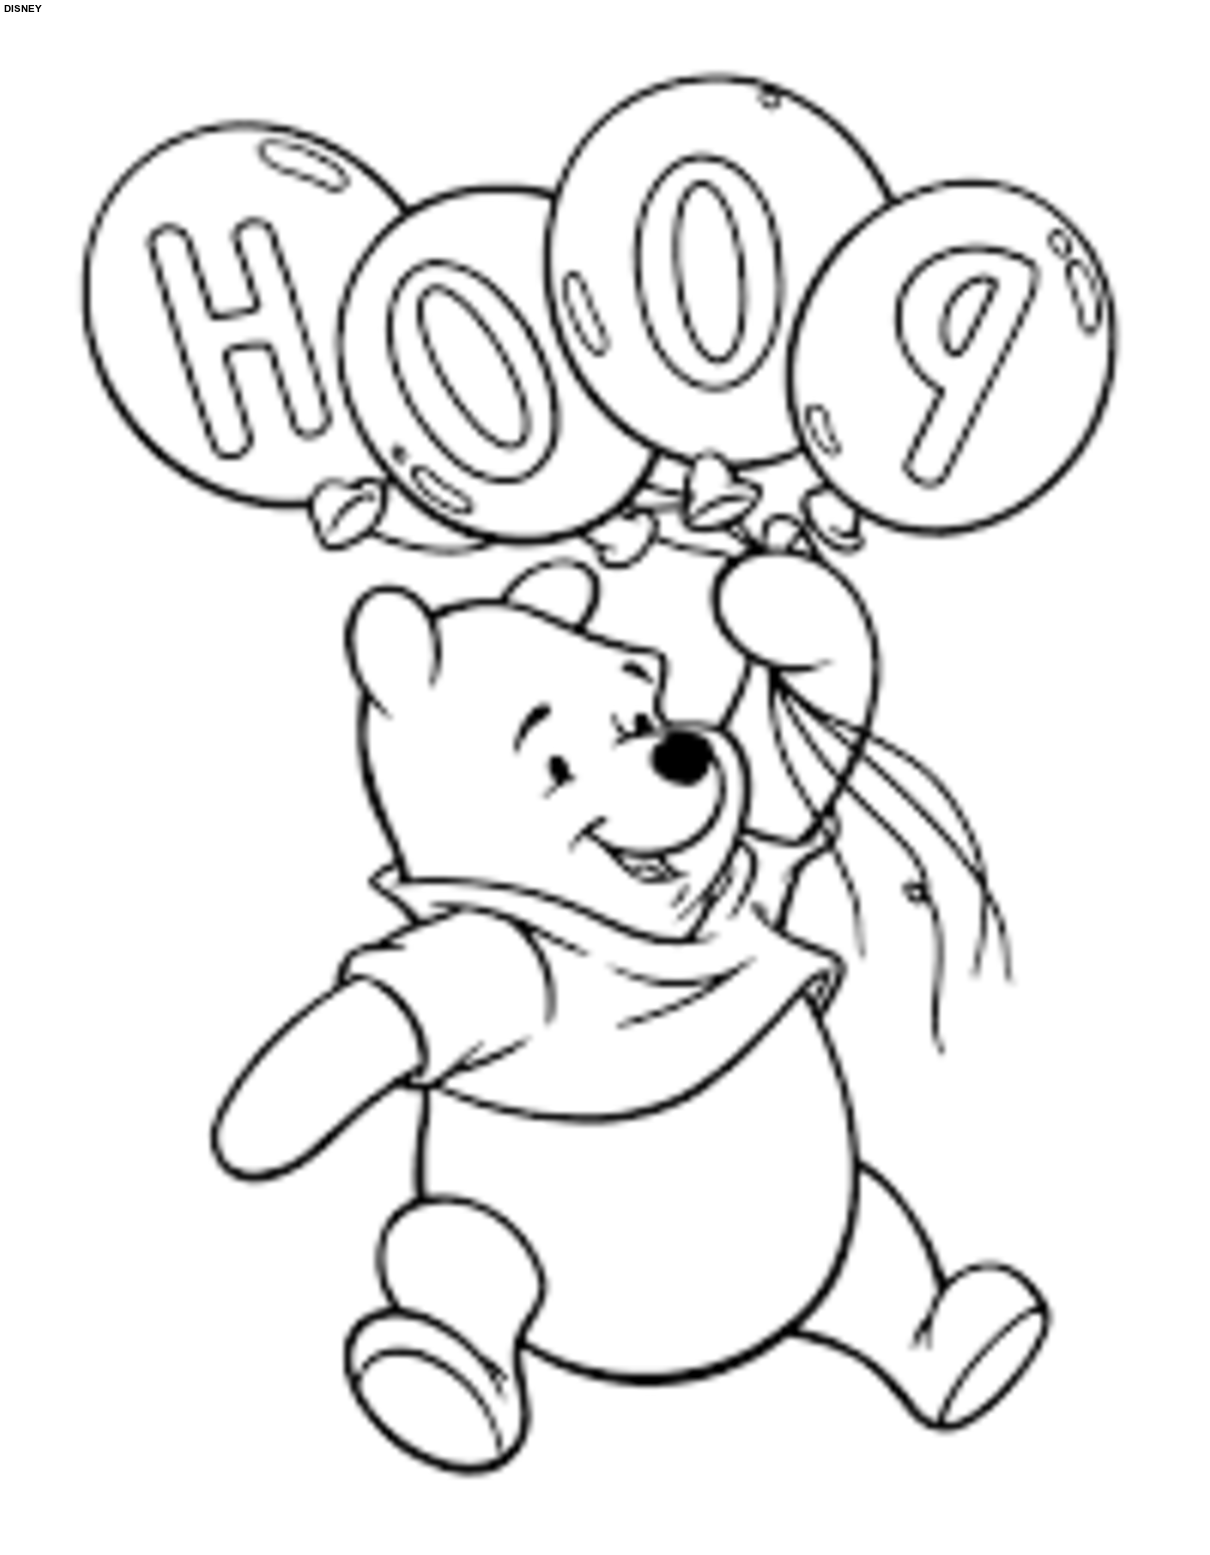 Uncategorized Disney Pictures To Colour disney colouring pages cartoon characters coloring for boy pagesdisney pagescolouring in disneydisney to